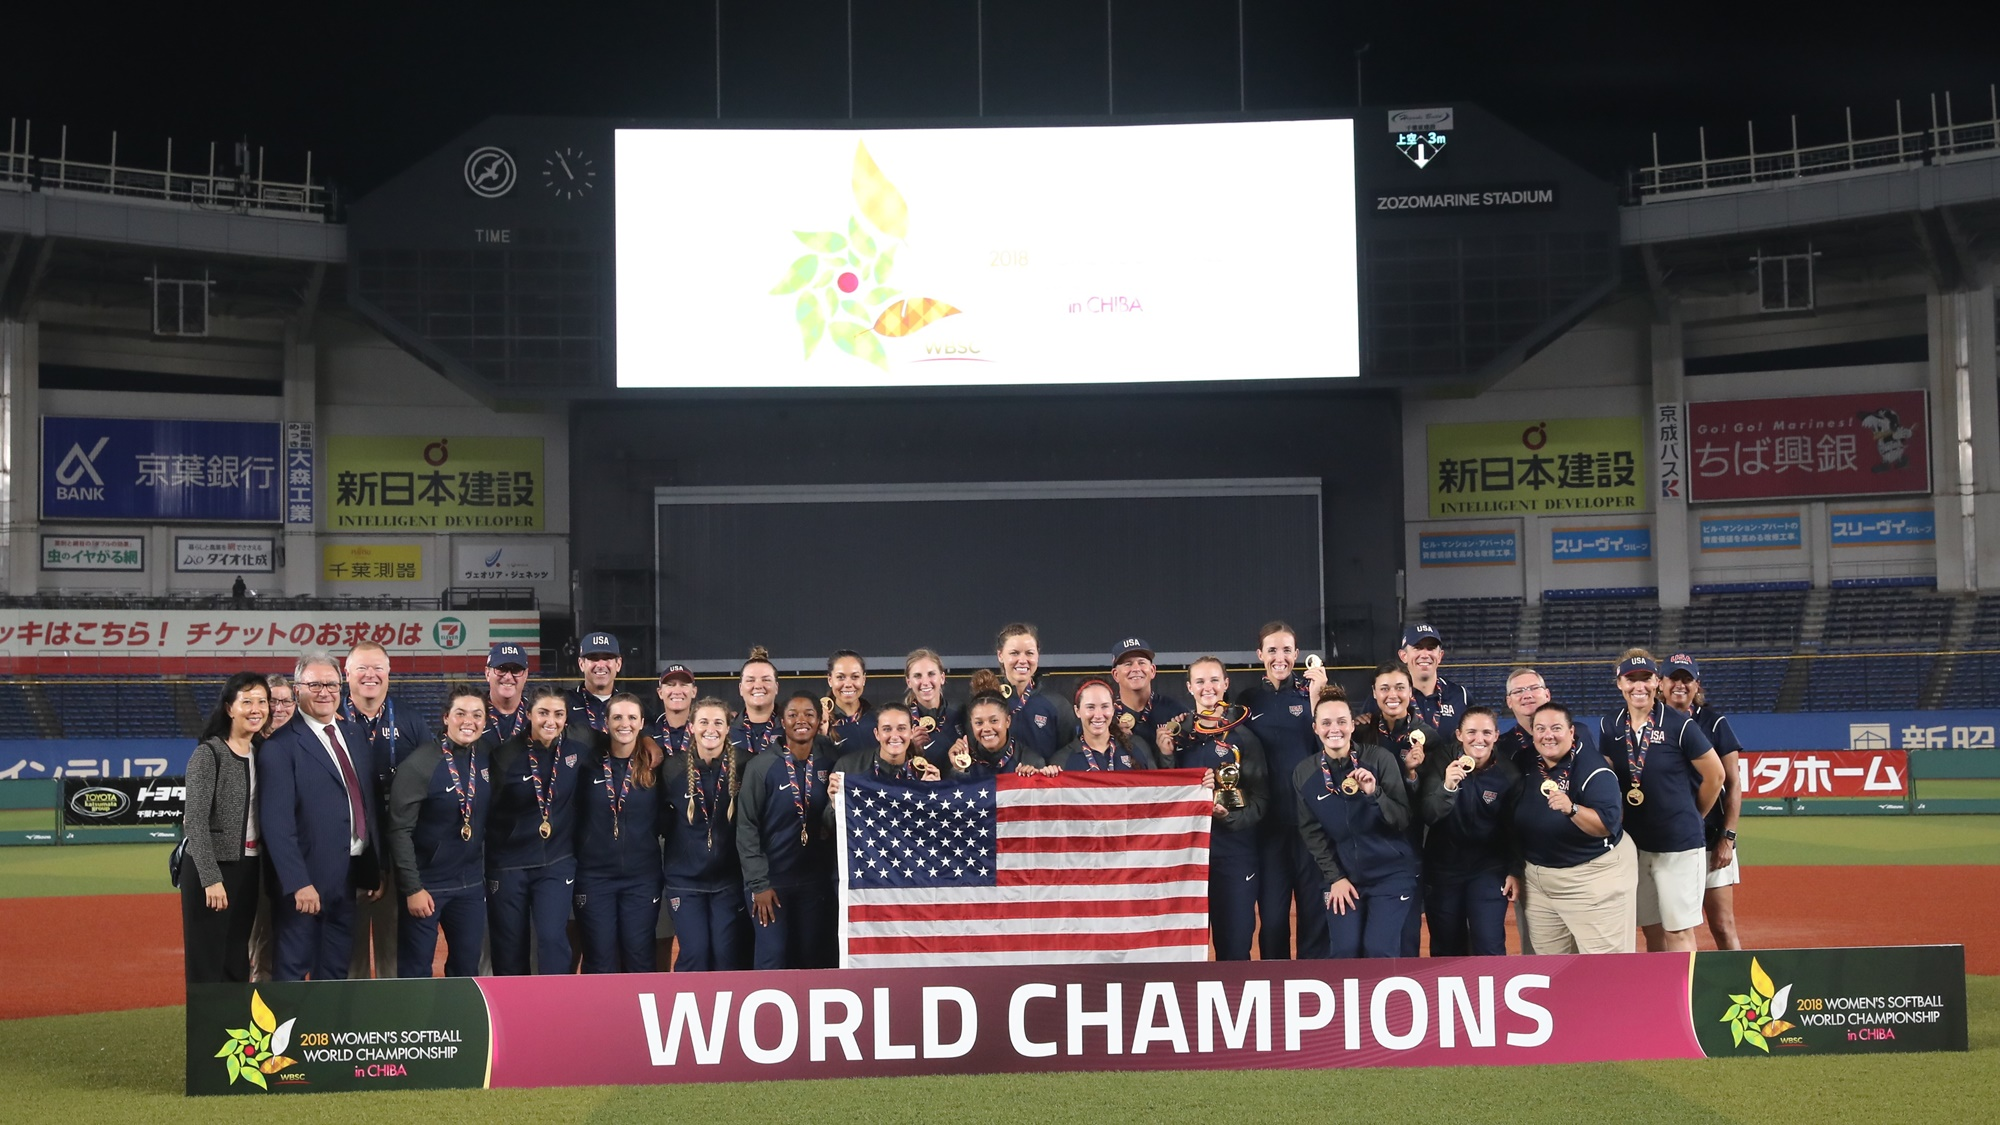 USA on the  podium